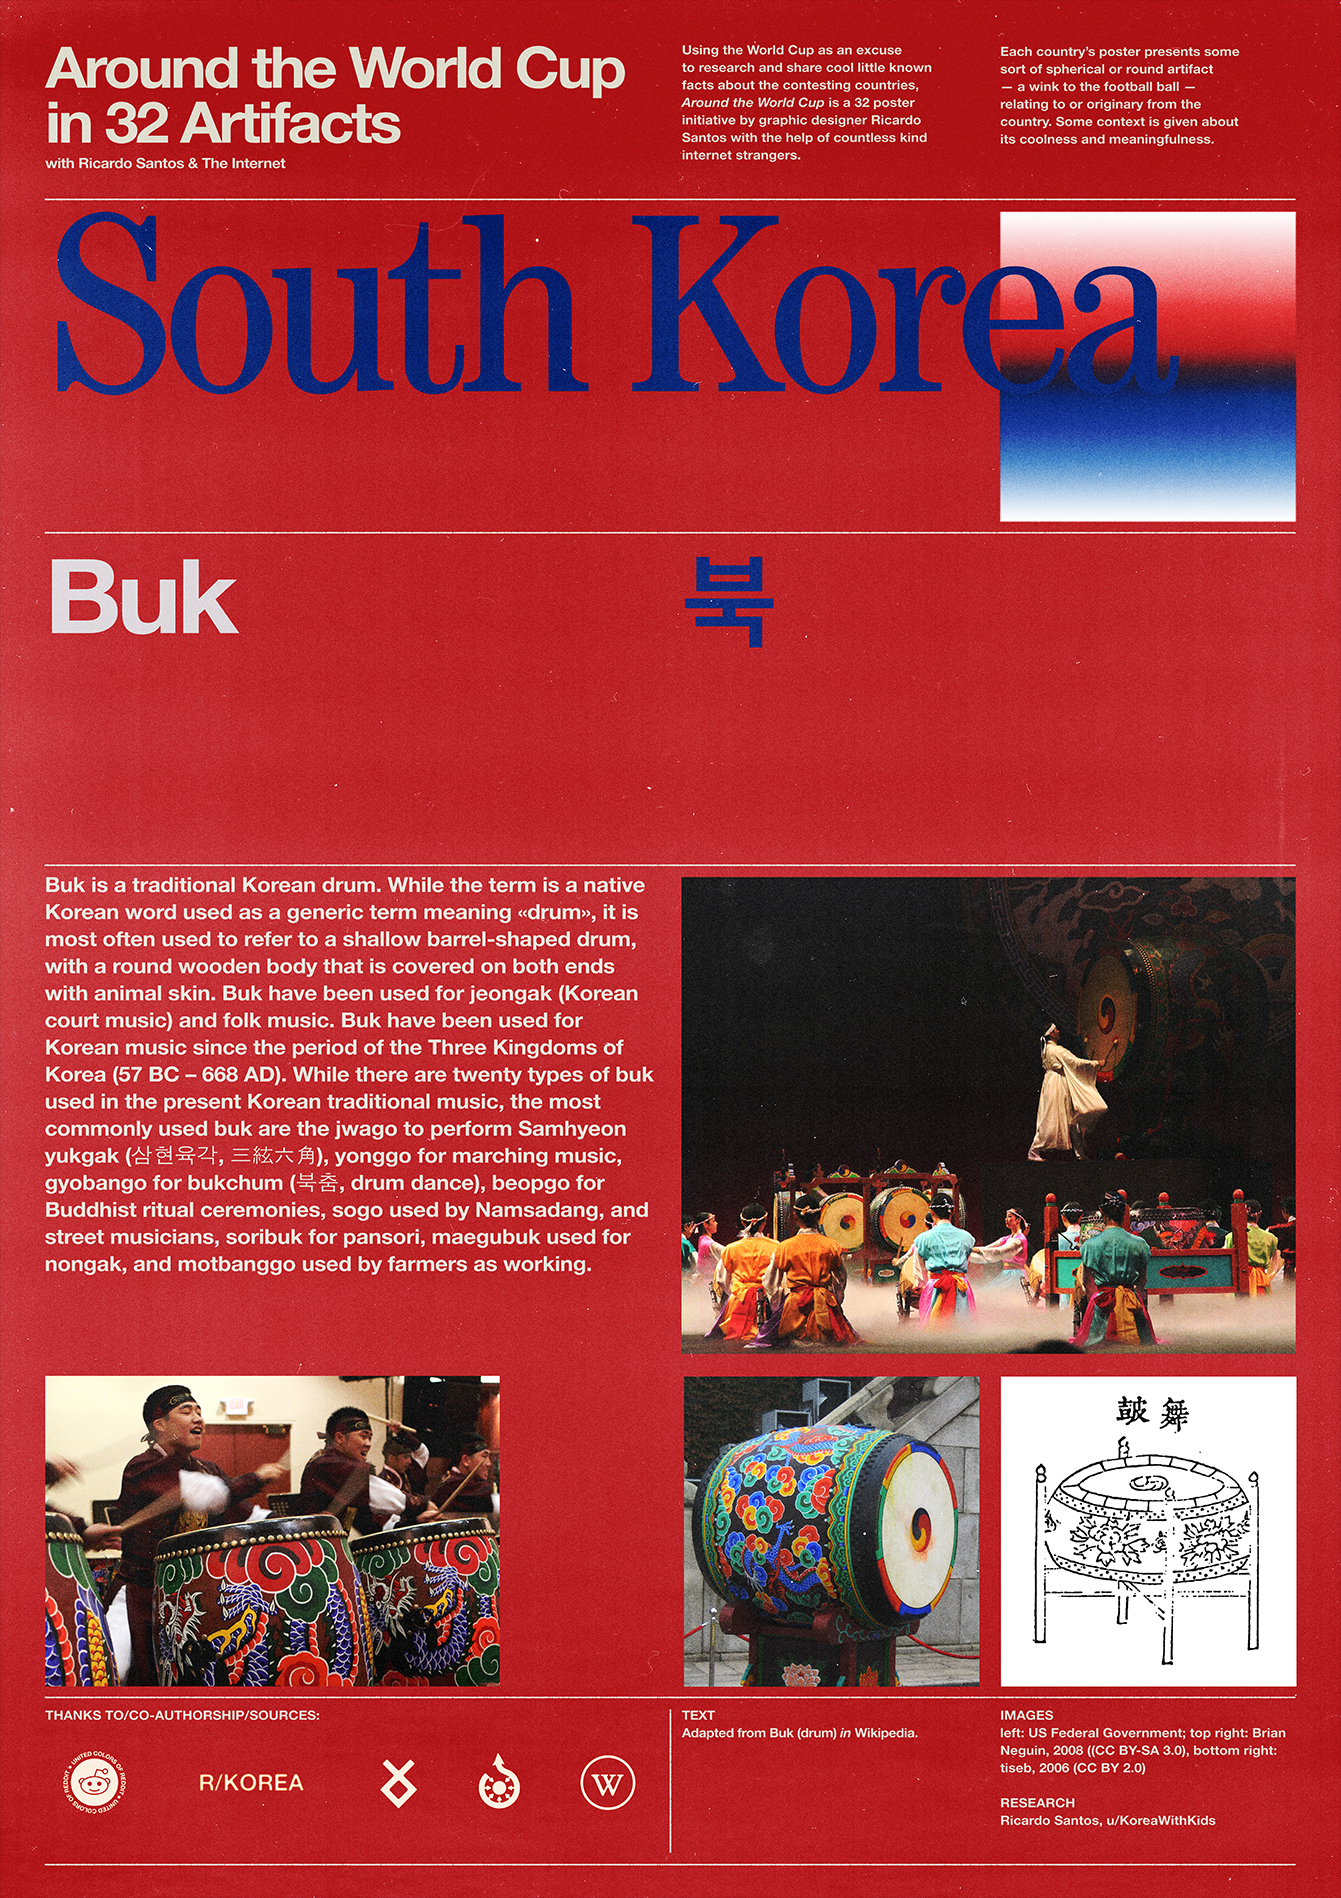 South Korea poster: Buk